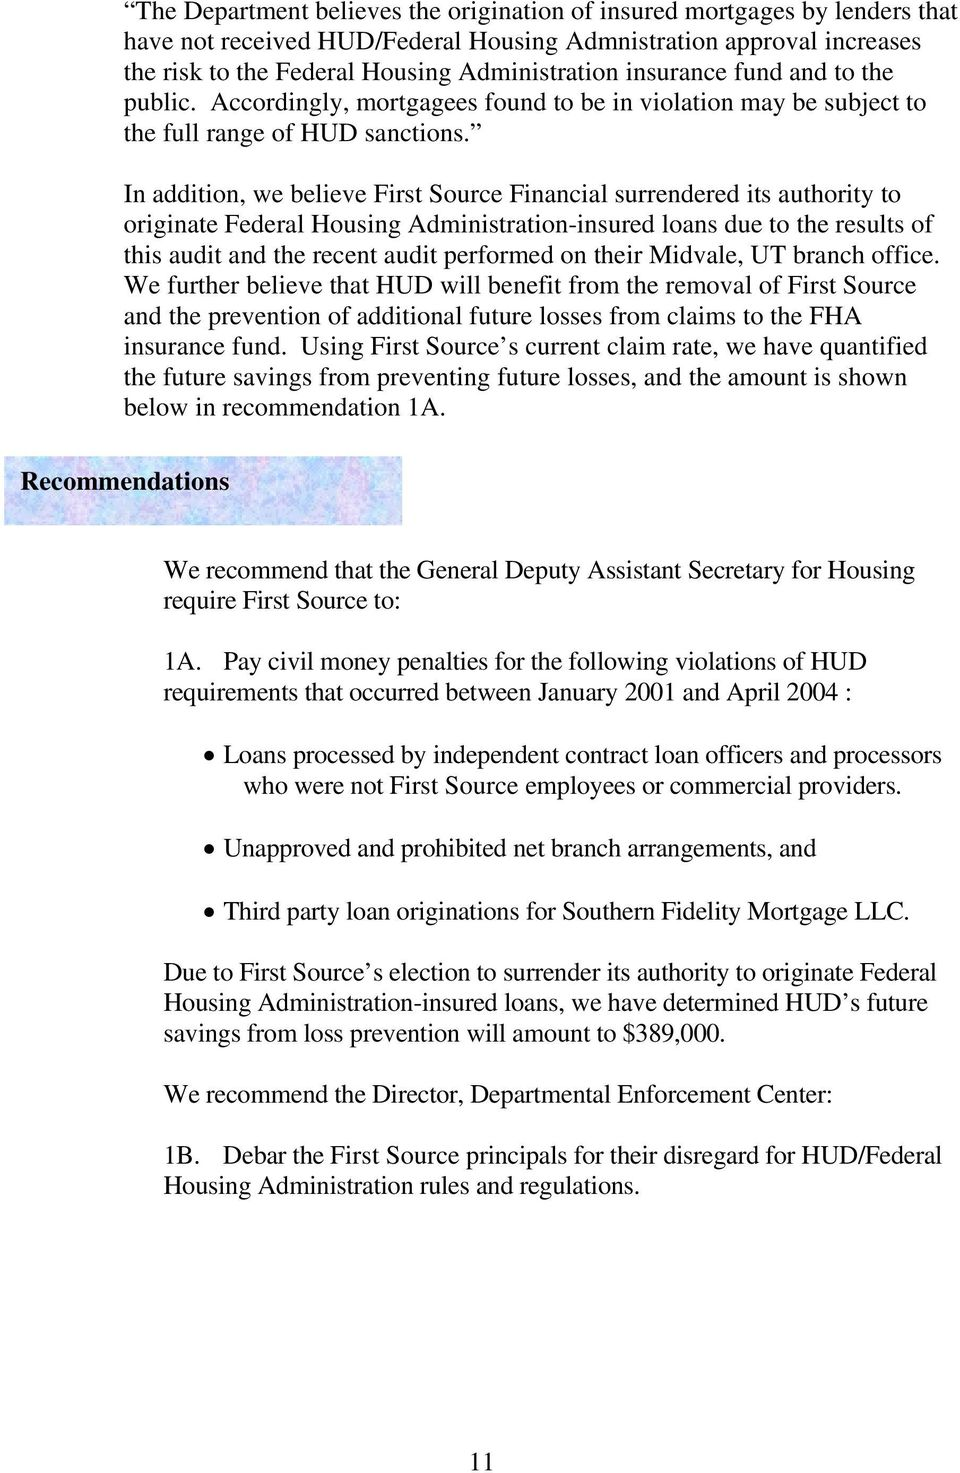 In addition, we believe First Source Financial surrendered its authority to originate Federal Housing Administration-insured loans due to the results of this audit and the recent audit performed on